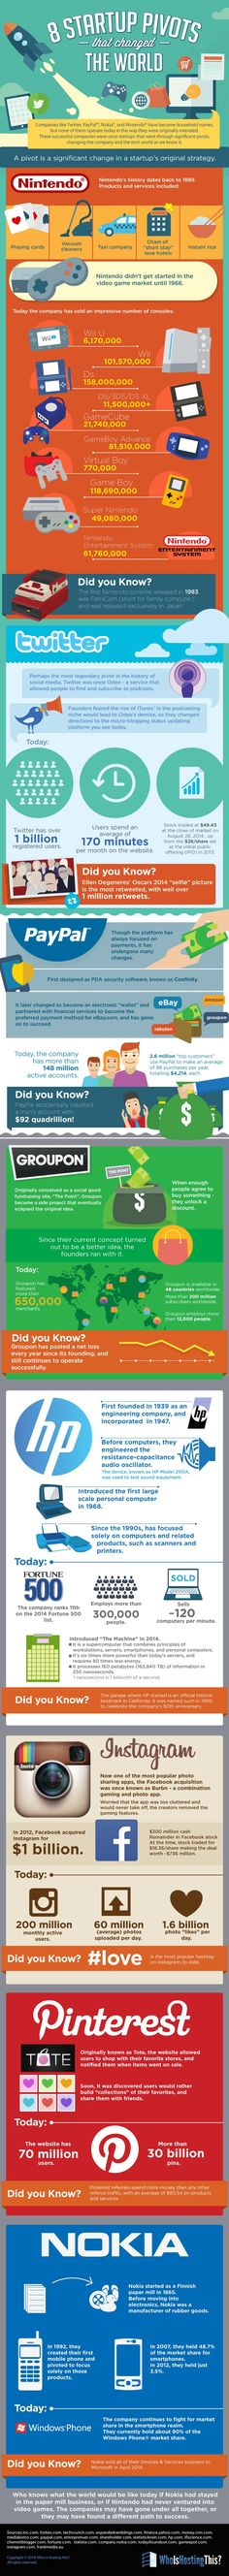 These Eight Pivots By Startups Changed The World Infographic